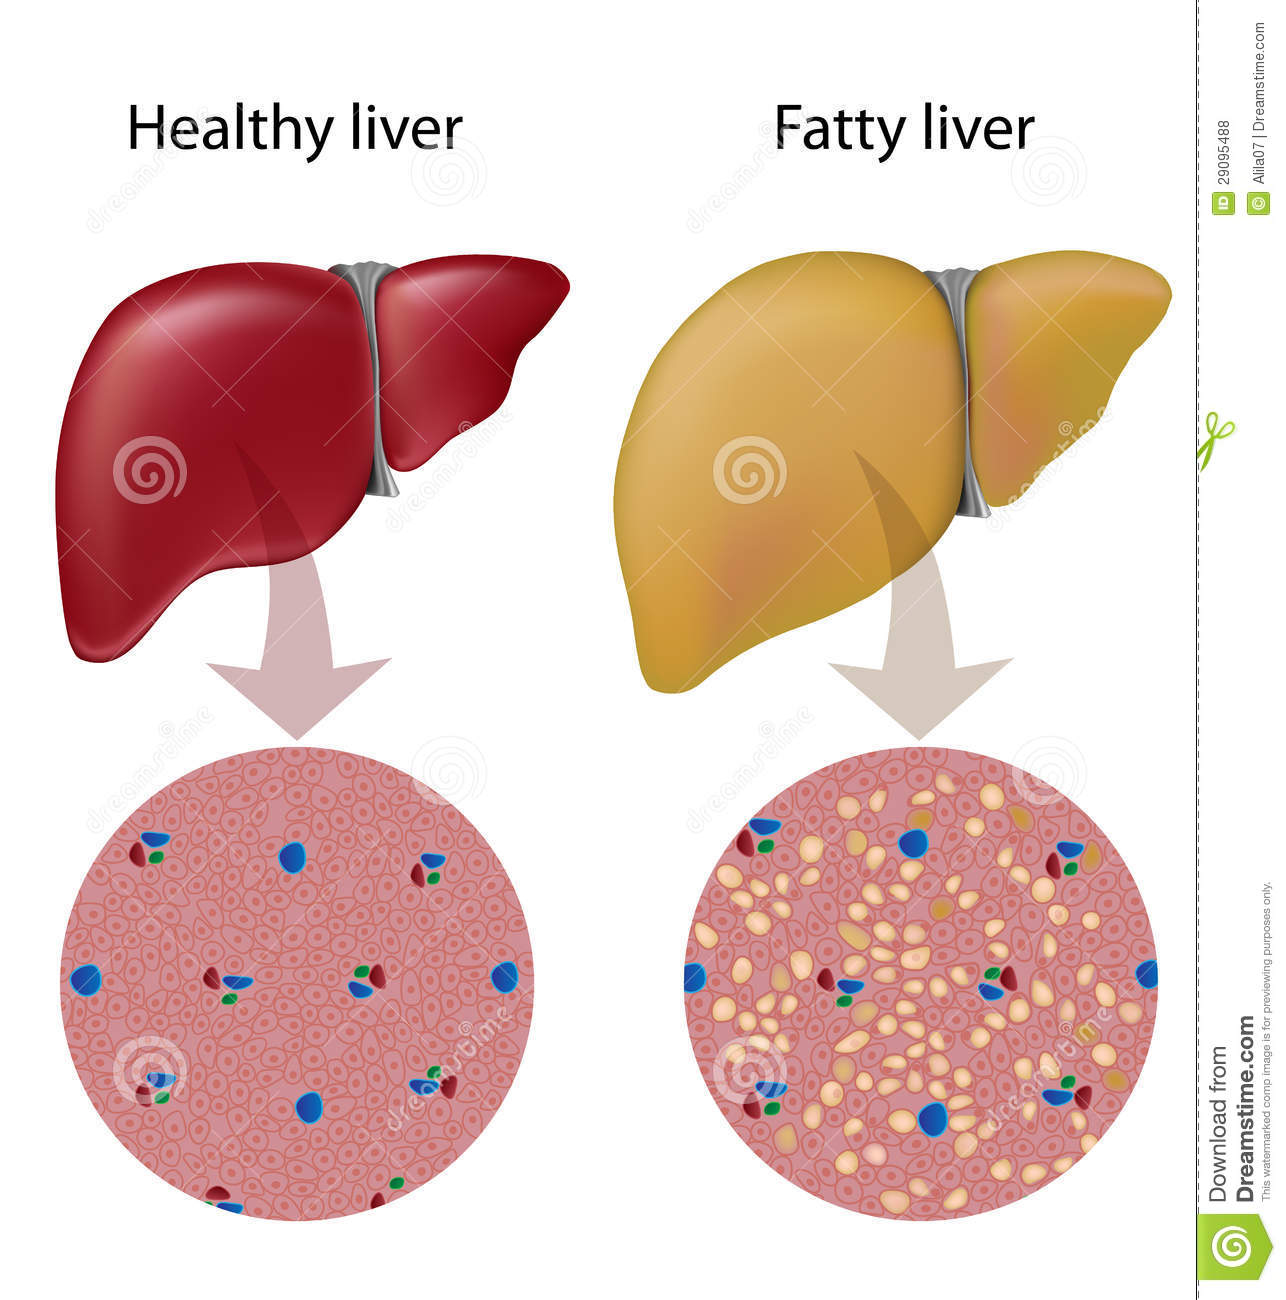 Image result for royalty free images of fatty liver